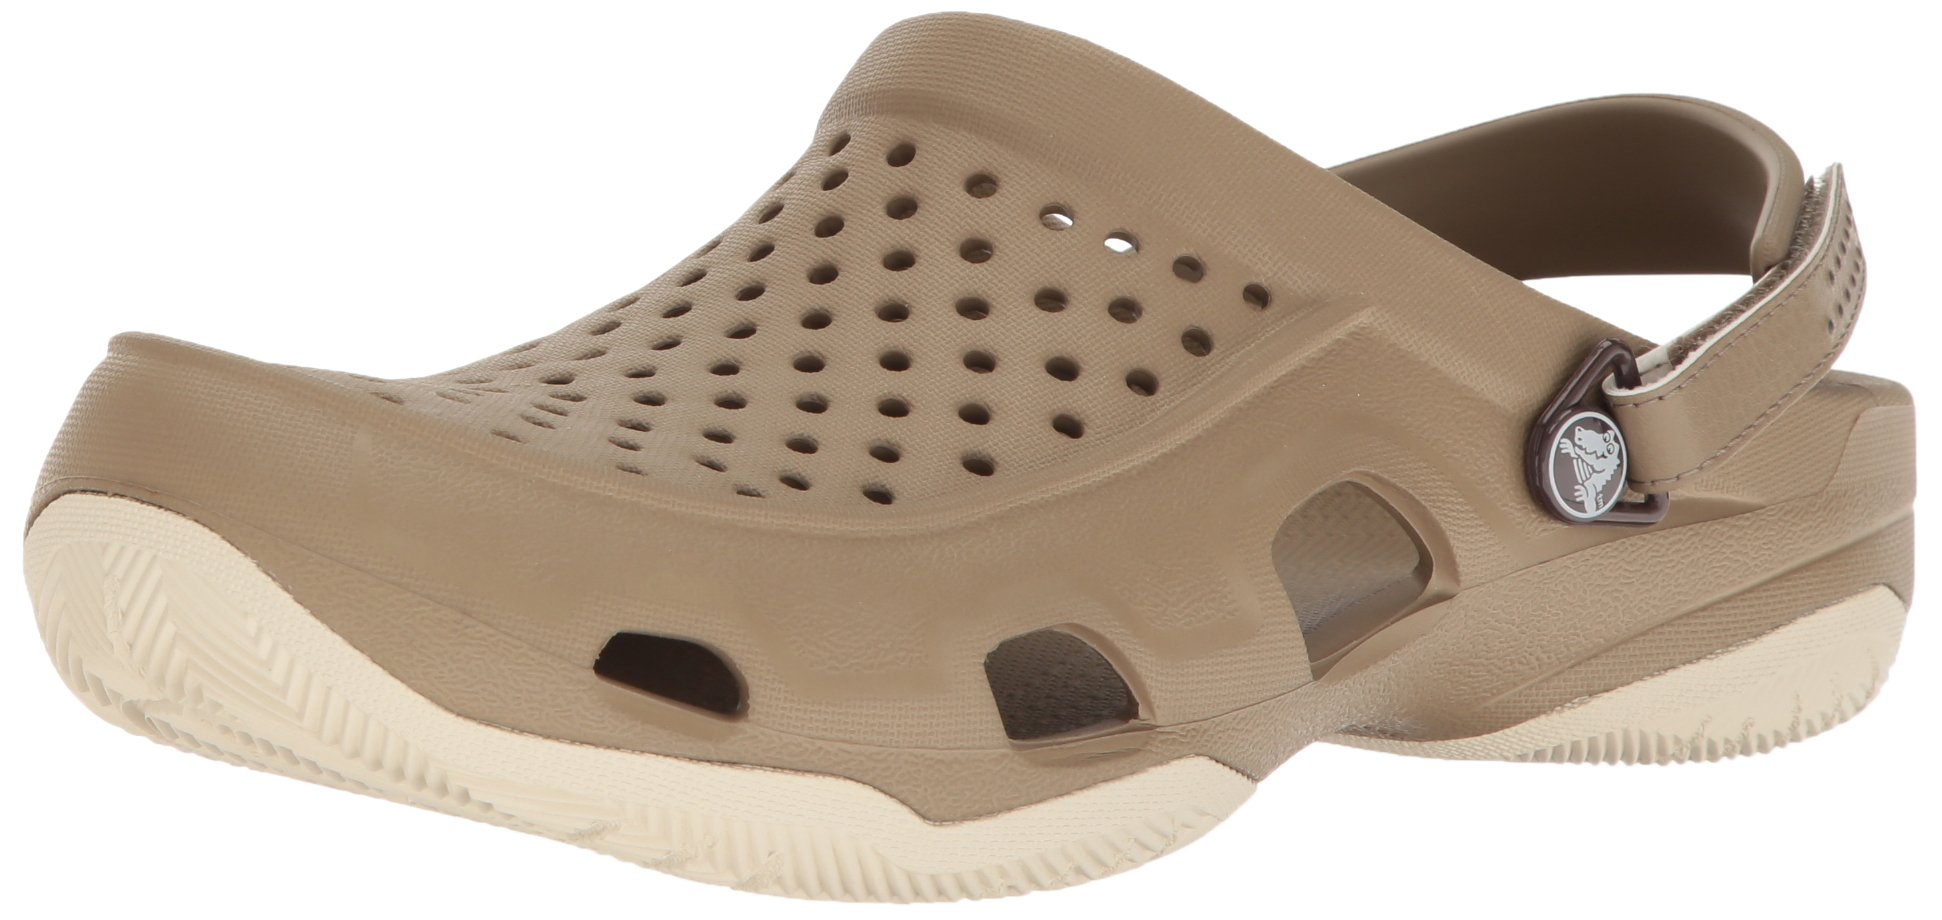 Crocs Men's Swiftwater Deck Clog M Mule, Khaki/Stucco, 10 M US by Crocs